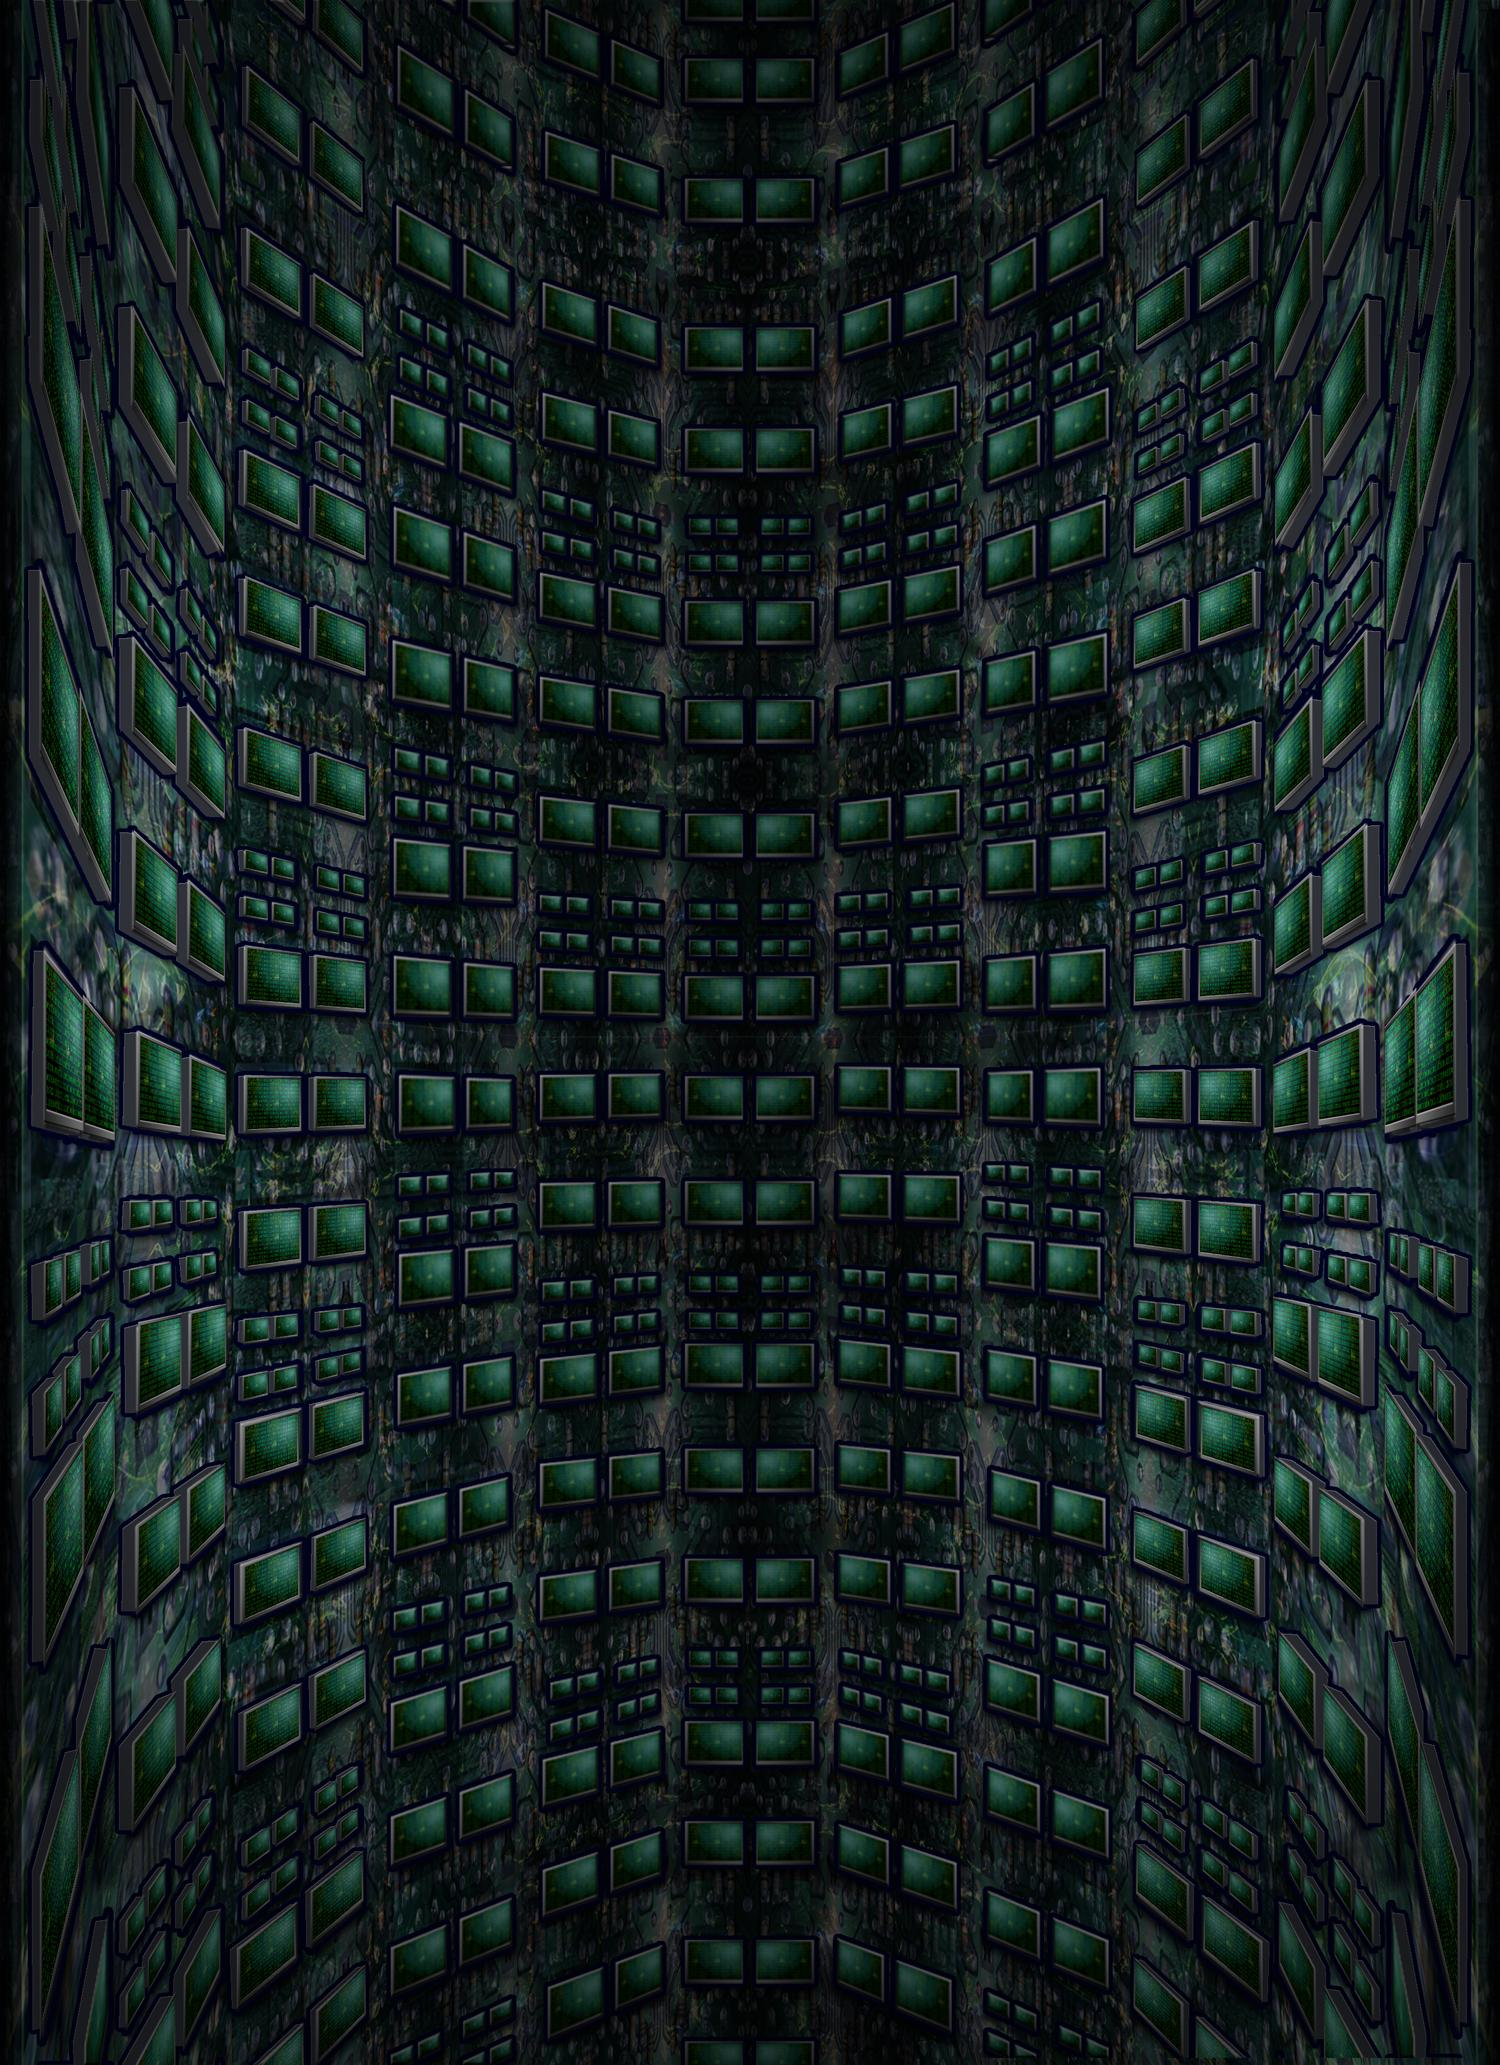 Neo Digital Retro Futura CRT Monitor Shaft Walls by Jayel Draco